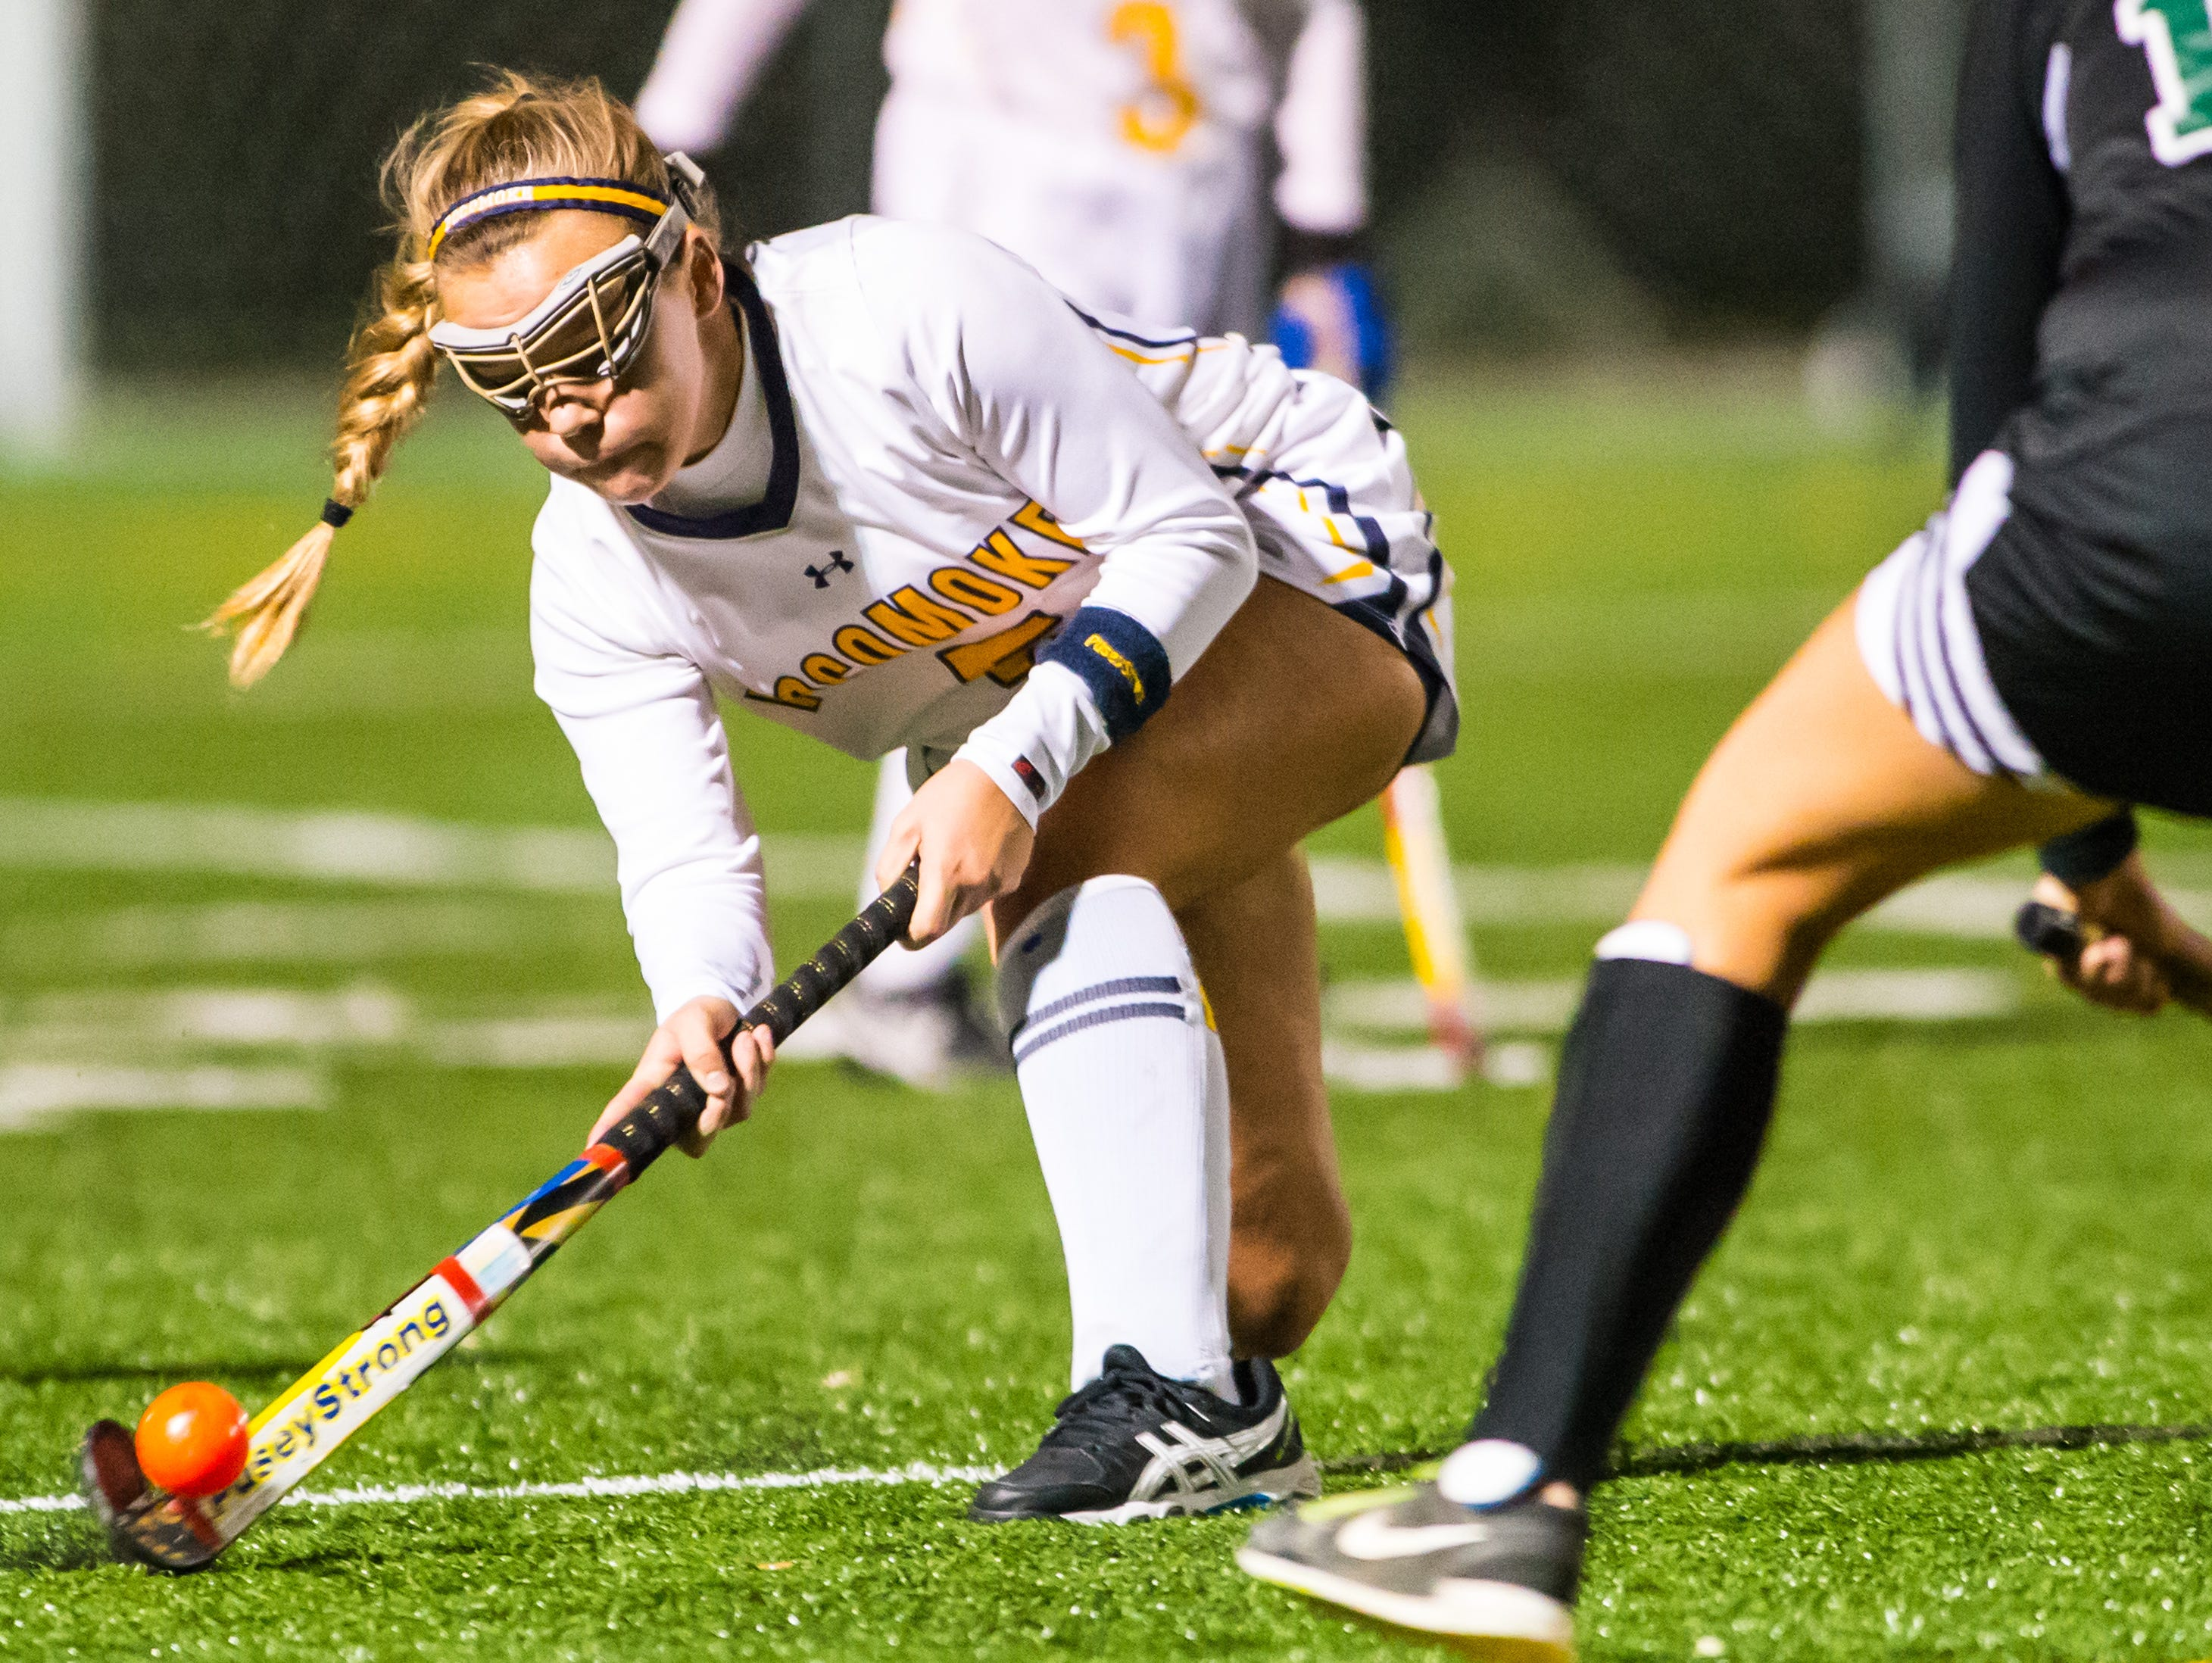 Pocmoke midfielder Mckenzie Mitchell (5) works up field against Patuxent in the MPSSSAA 1A State Finals on Saturday evening at Washington College in Chestertown